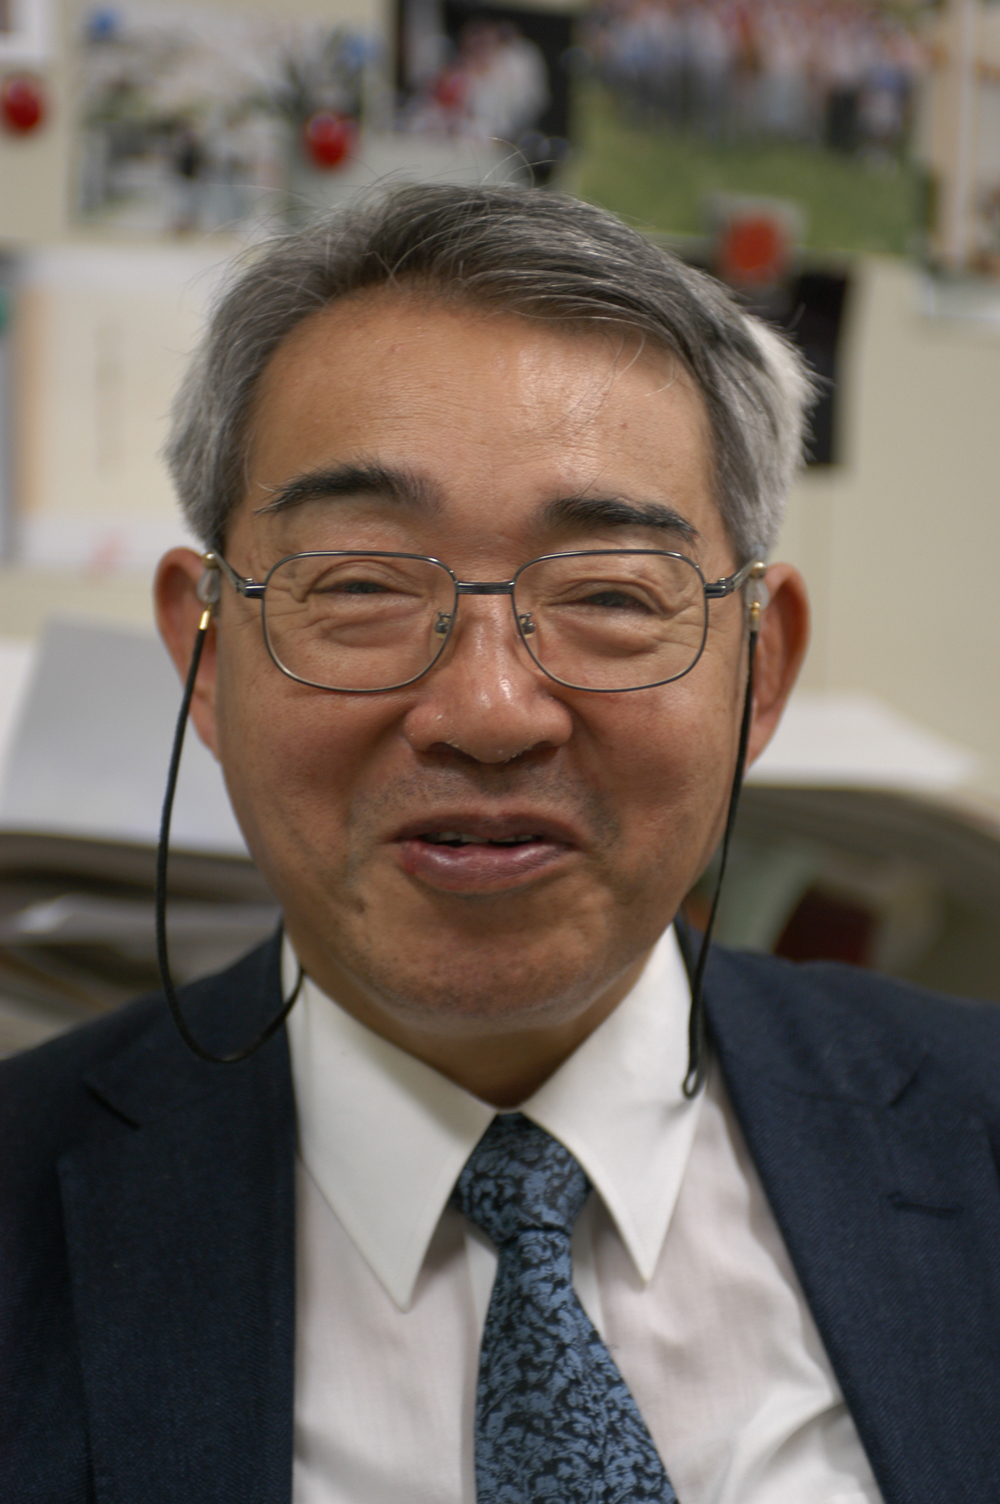 Shin-ichi Kurokawa of the KEK Laboratory at Tsukuba, Japan